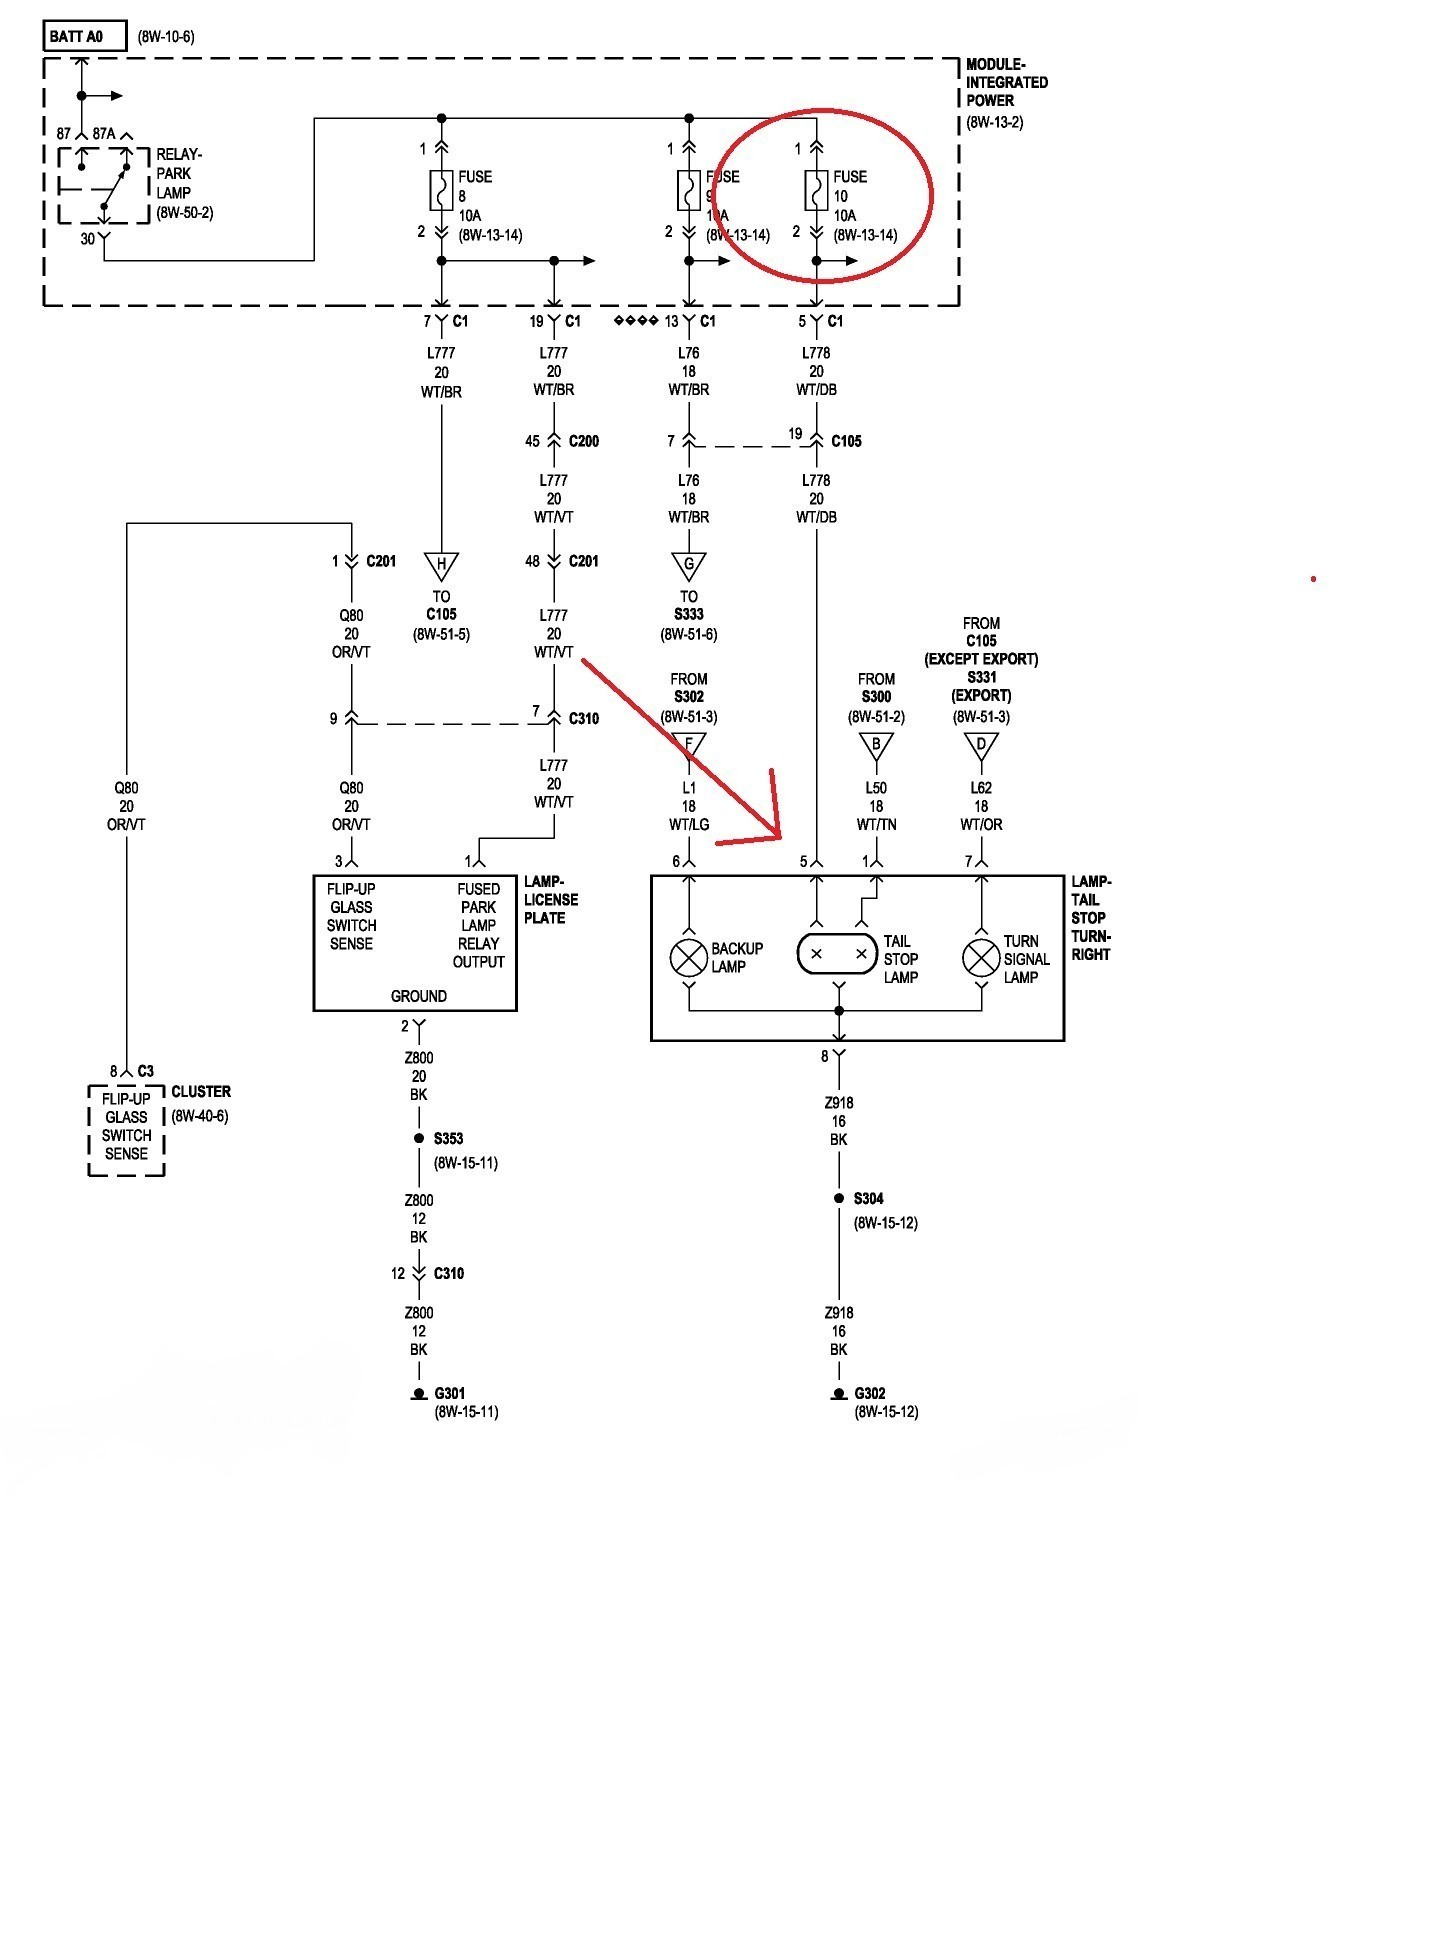 [EQHS_1162]  🏆 [DIAGRAM in Pictures Database] 2004 Jeep Liberty Headlight Wire Diagram  Just Download or Read Wire Diagram - MASANORI.MORITA.BI-WIRING -SPEAKERS.ONYXUM.COM | 2004 Jeep Liberty Wiring Diagram |  | Complete Diagram Picture Database - Onyxum.com